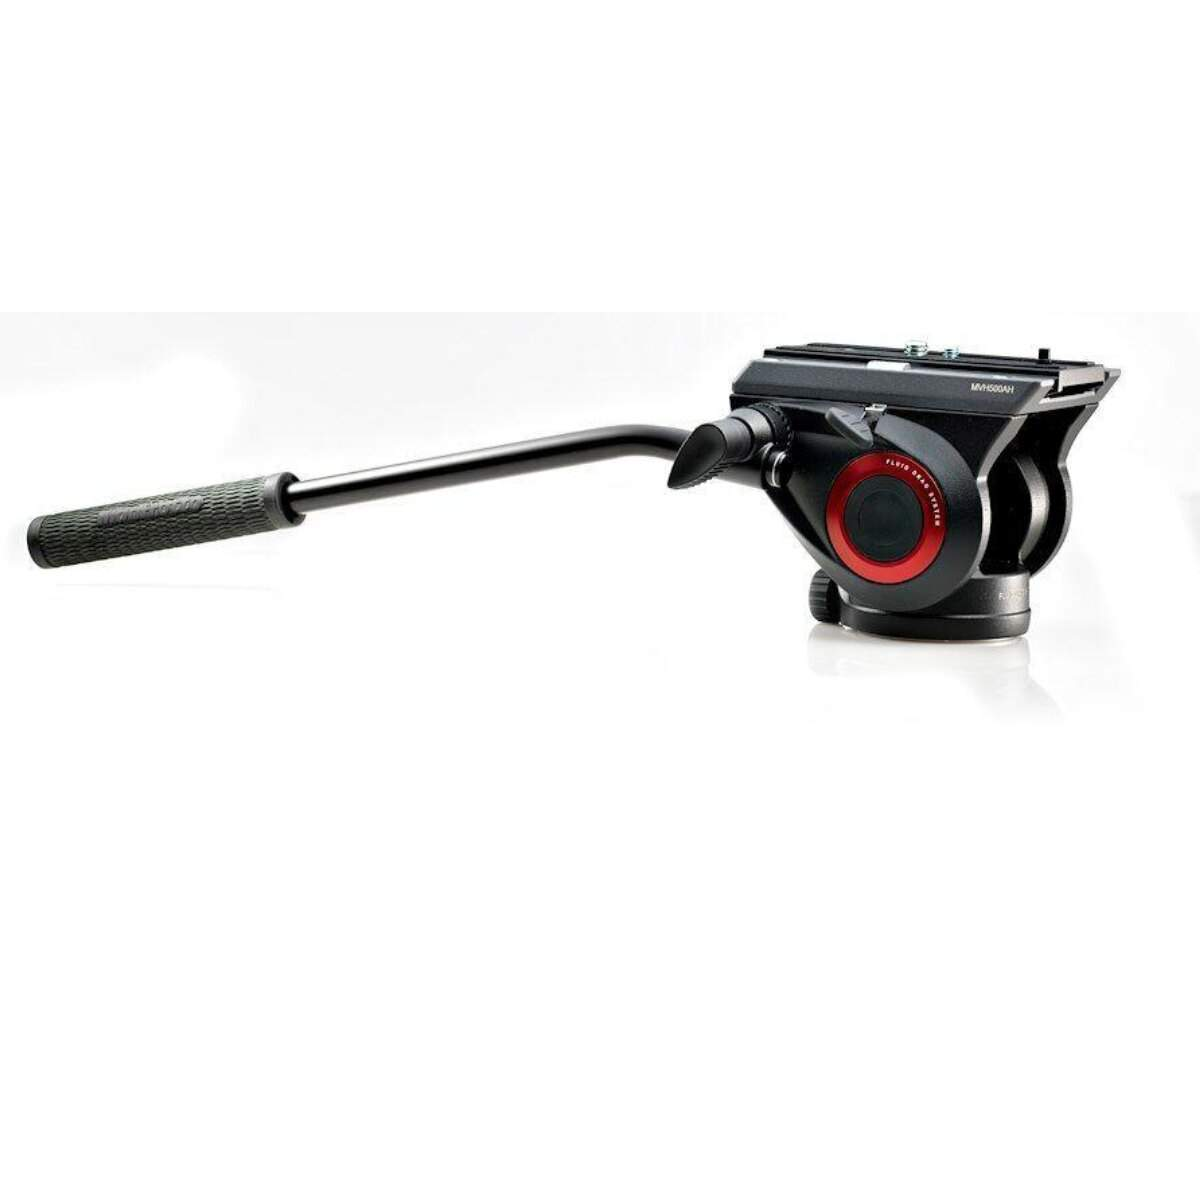 Manfrotto Cabezal de video fluido 500 con base plana